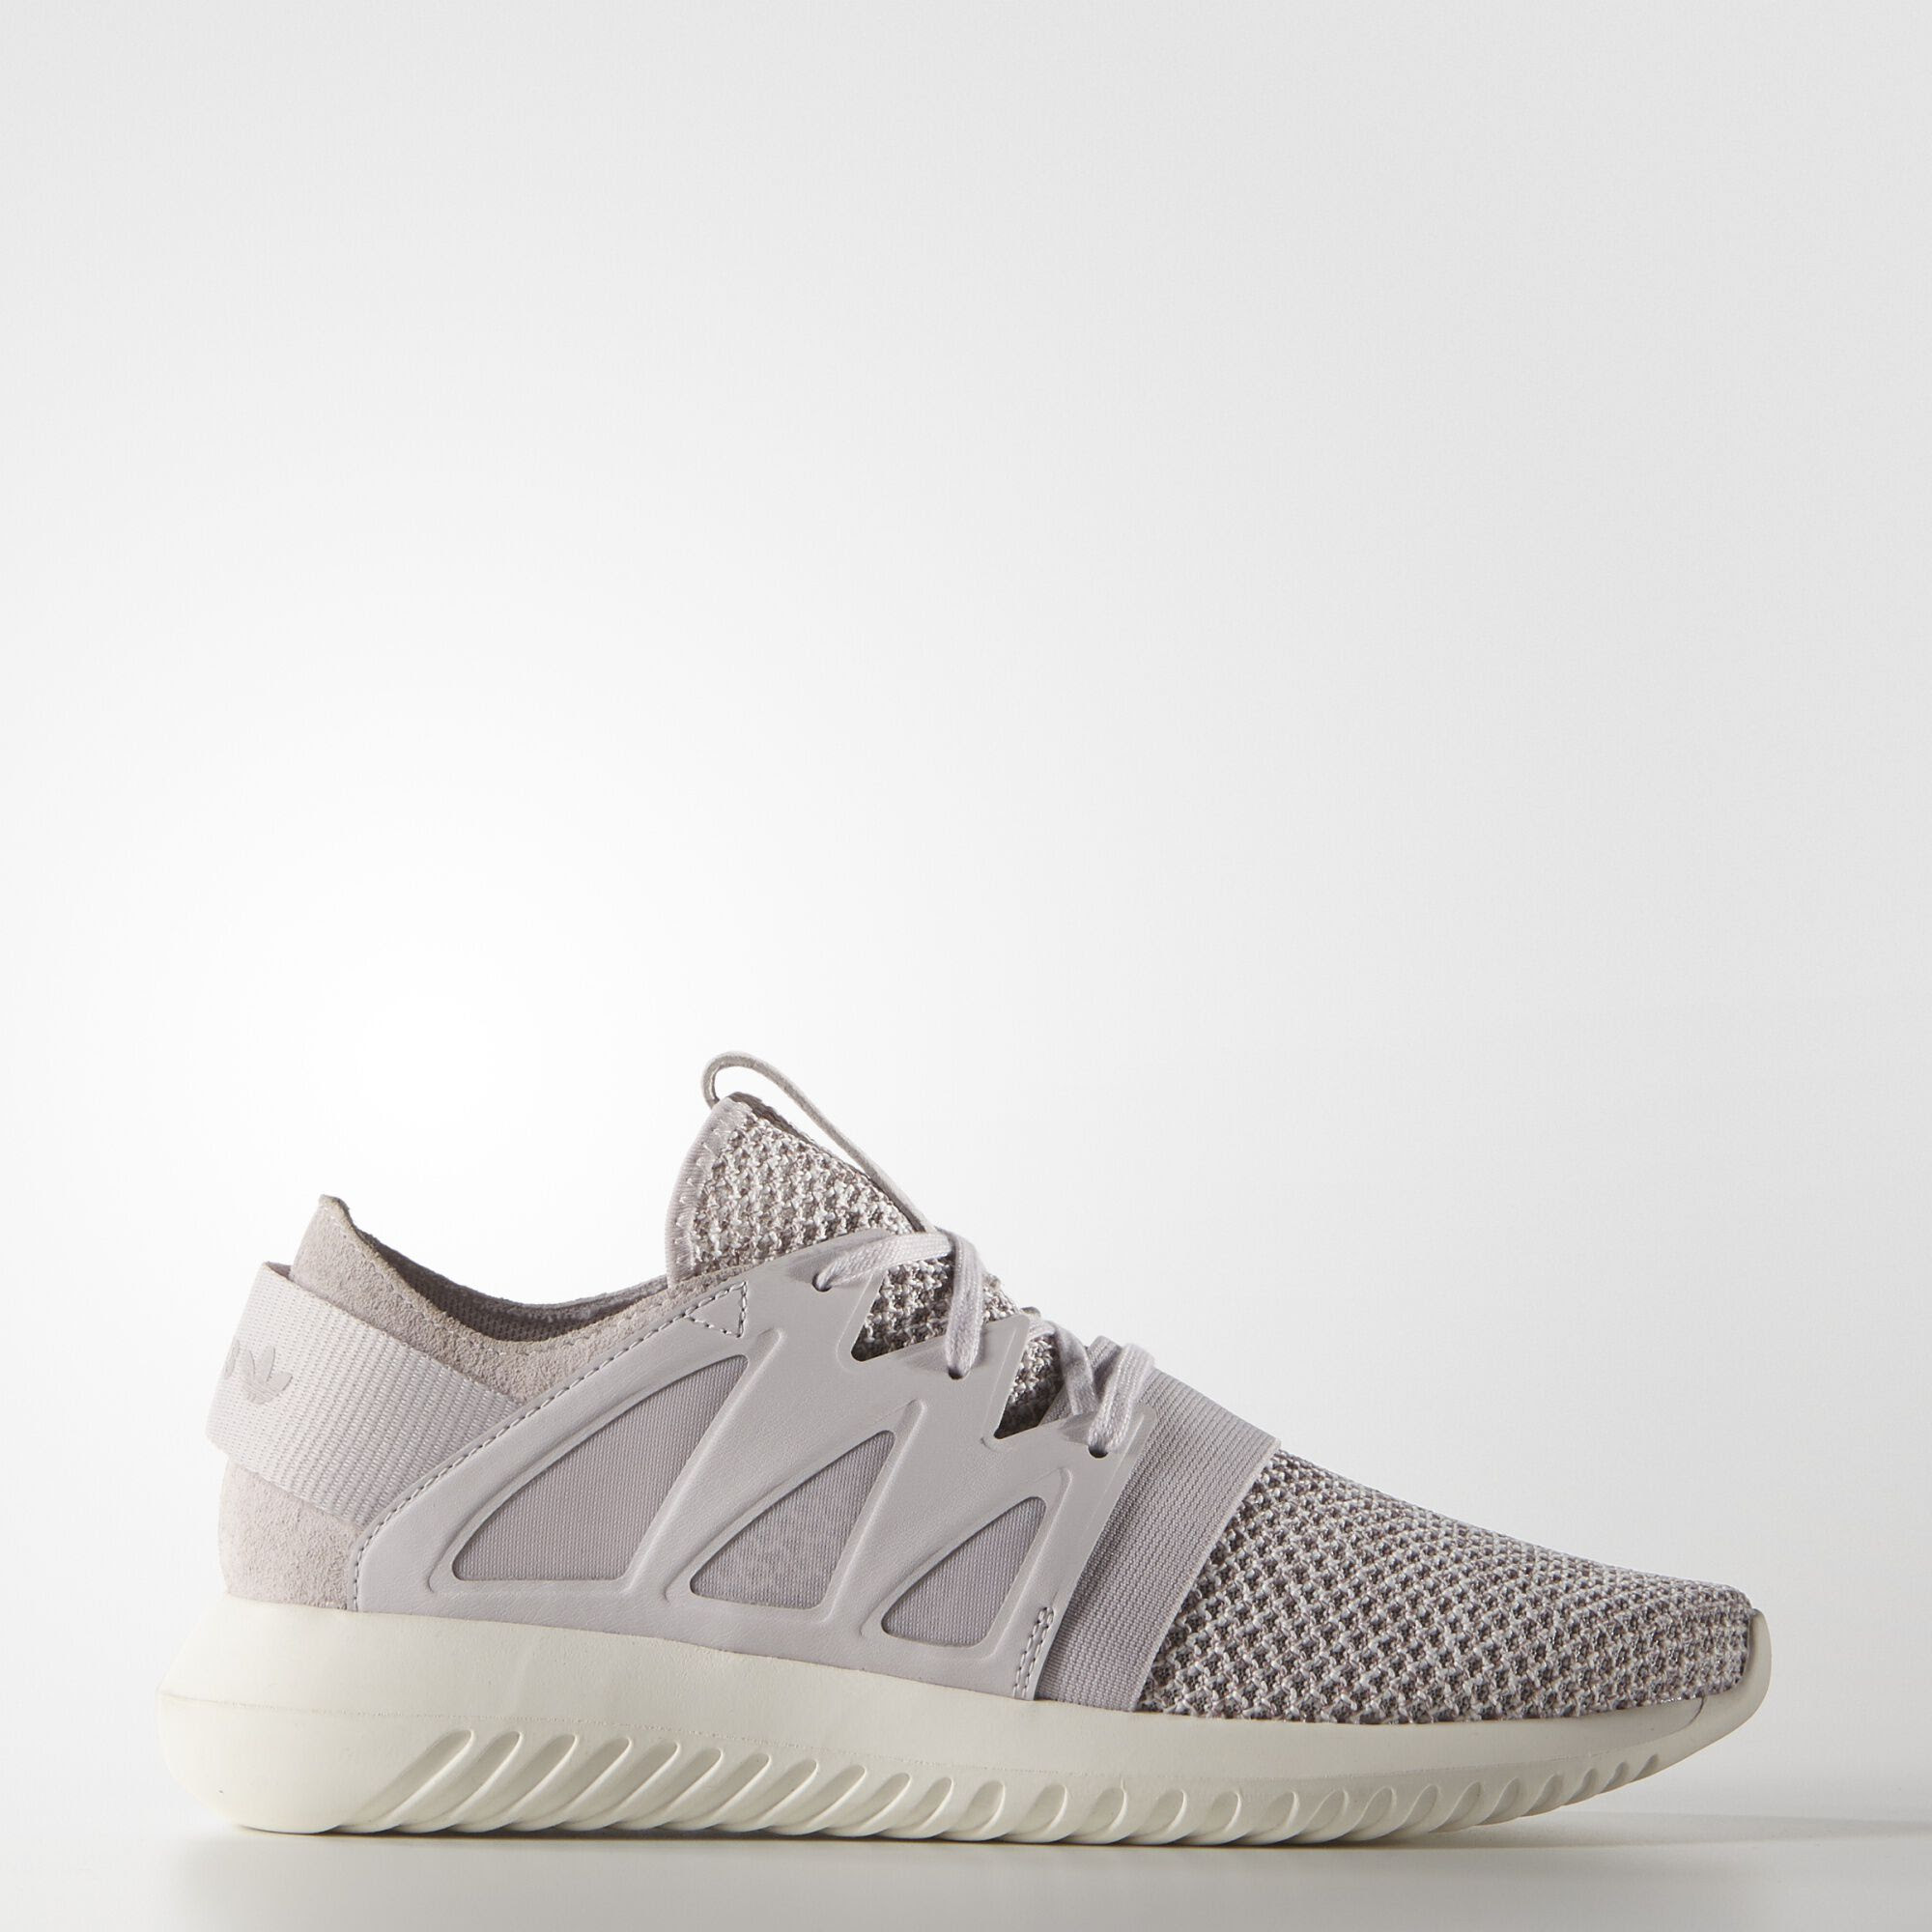 best website 619c7 f2059 adidas tubular viral shoes core